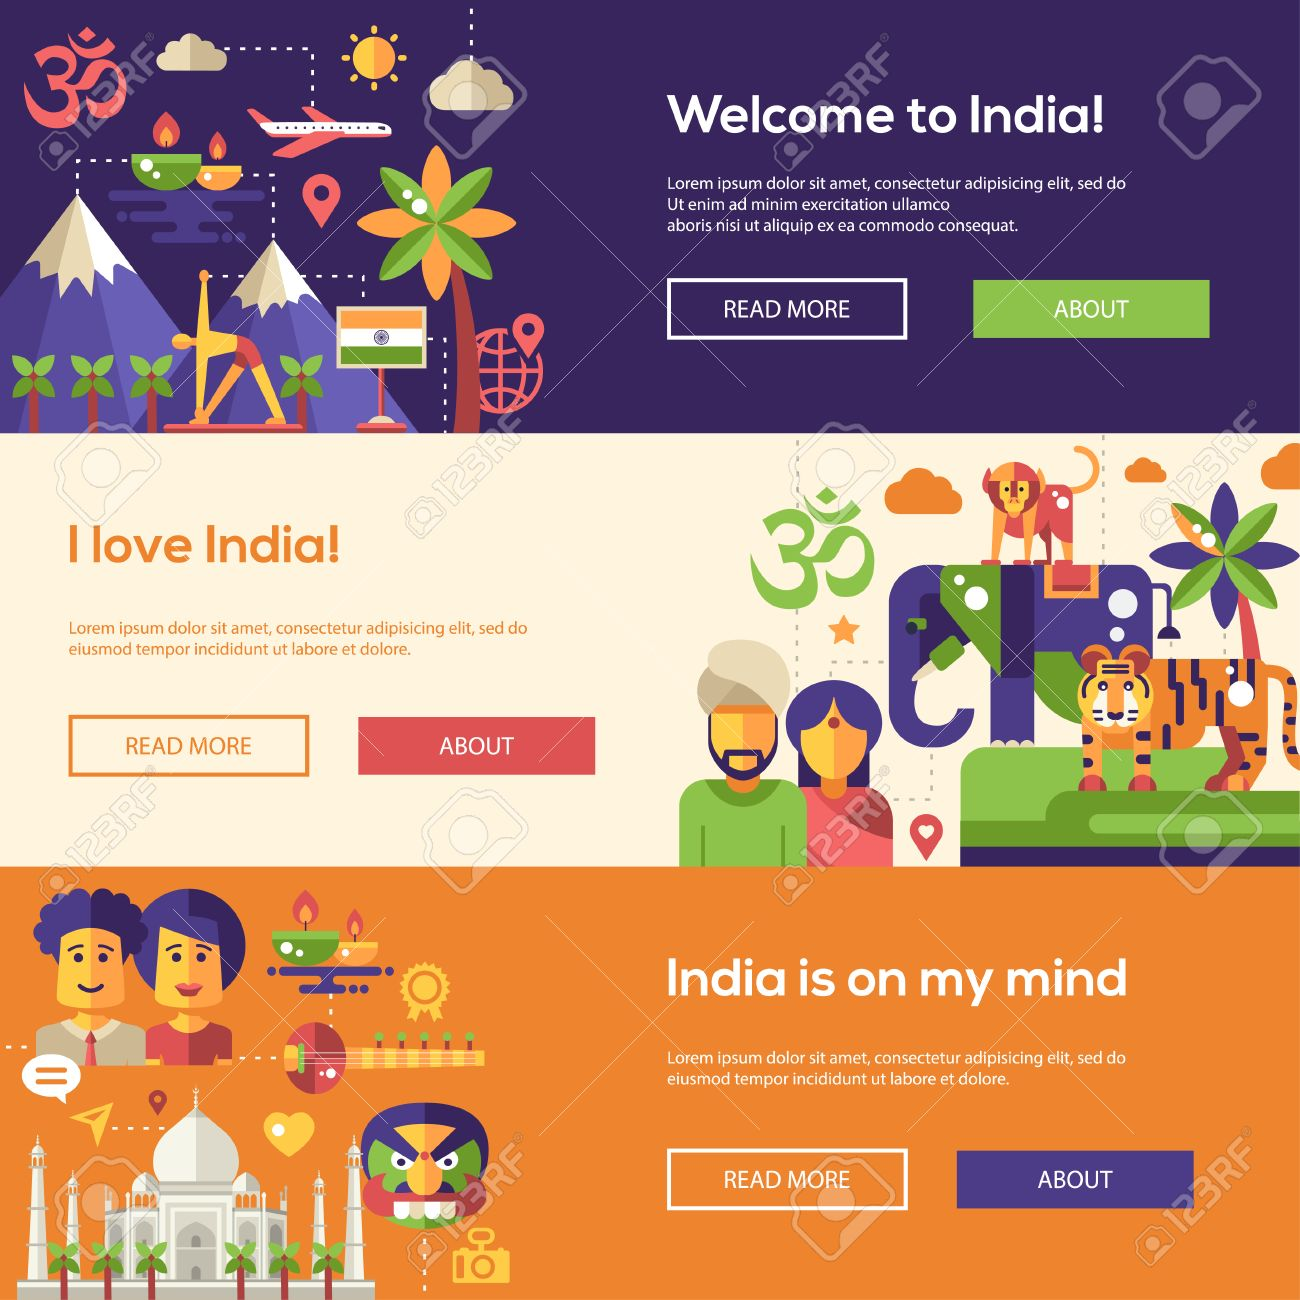 Good Indian Website #6: Welcome To India Travel Website Flat Design Headers, Banners Set With  Famous Indian Symbols Stock